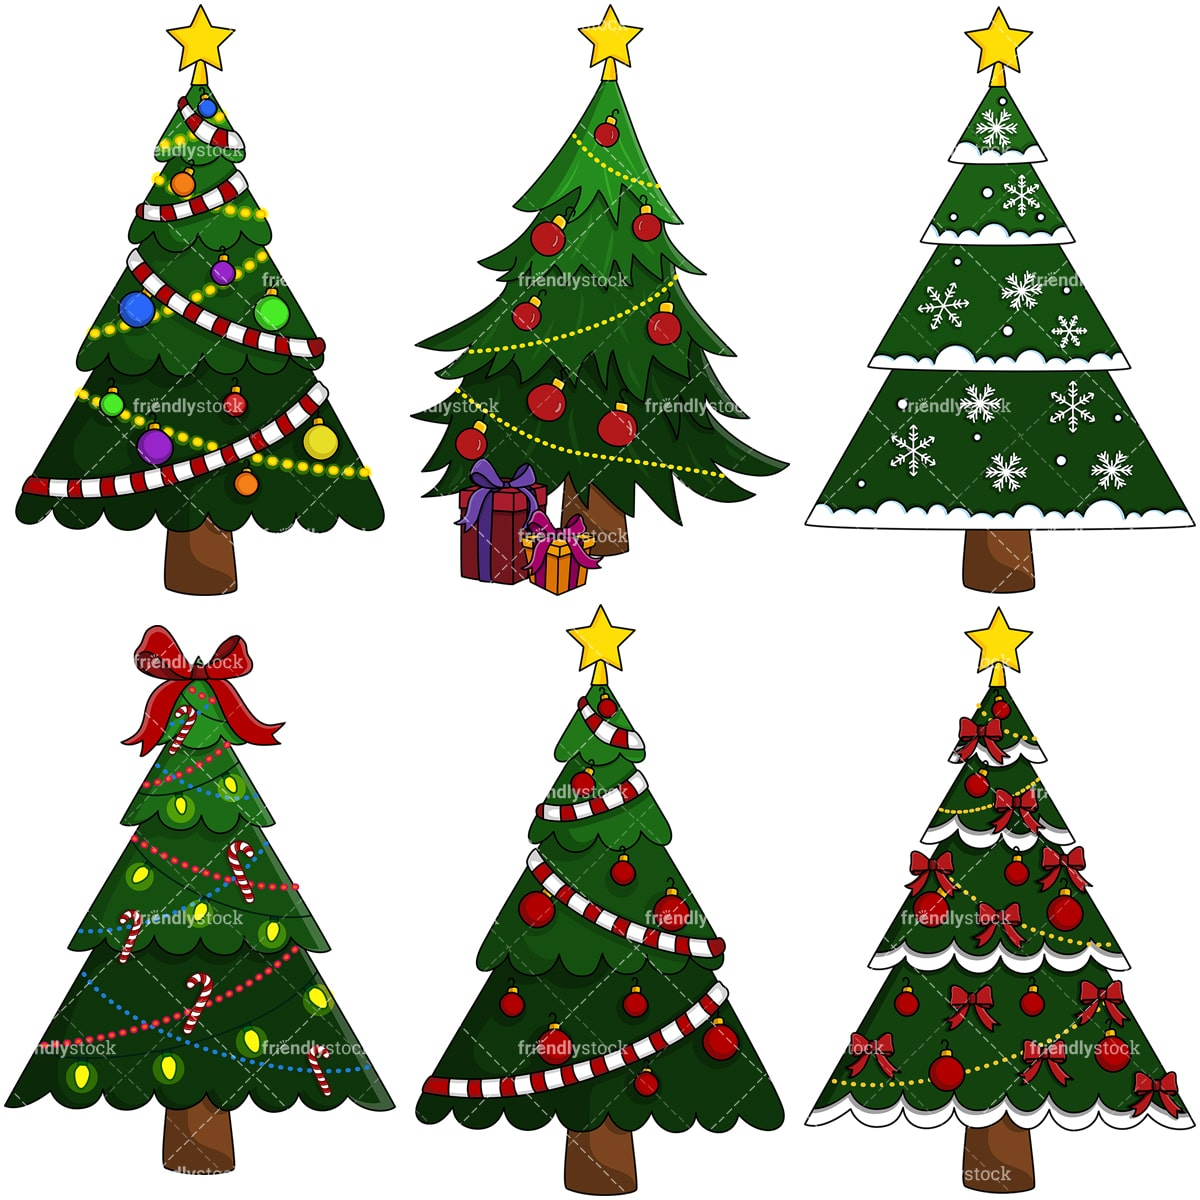 christmas trees vector clipart bundle friendlystock christmas trees vector clipart bundle friendlystock